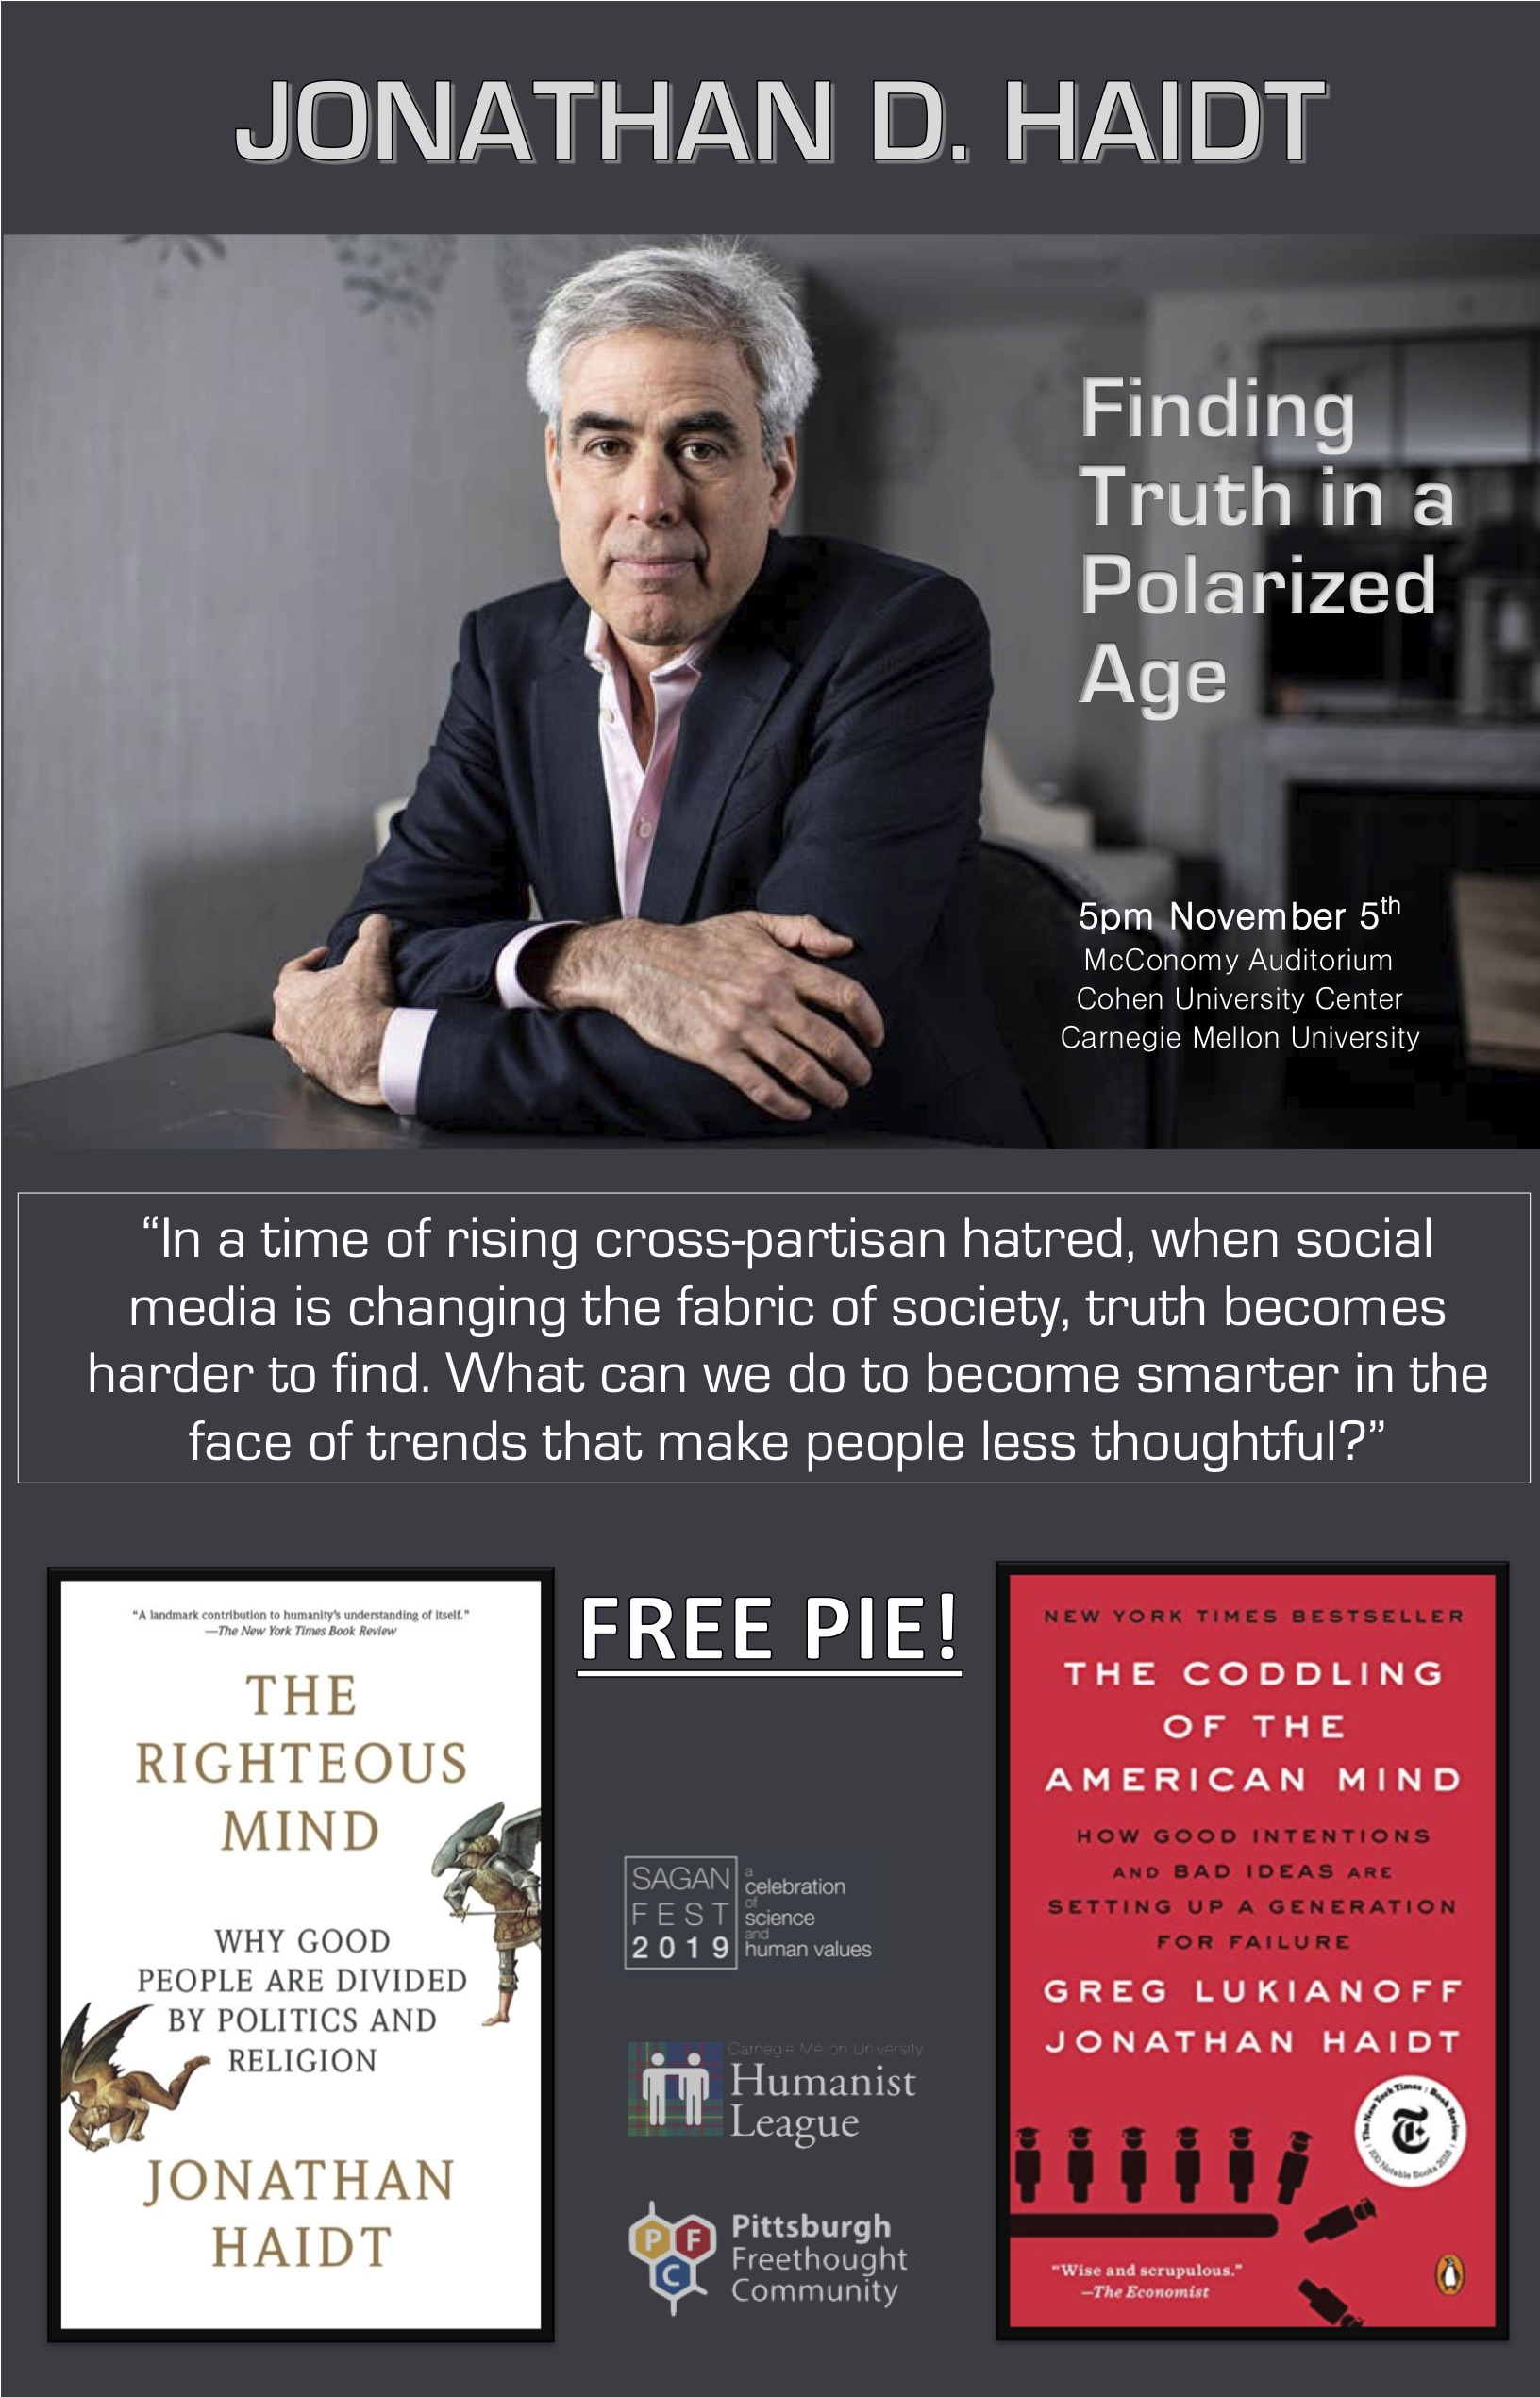 Jonathan D. Haidt – Finding Truth in a Polarized Age Poster